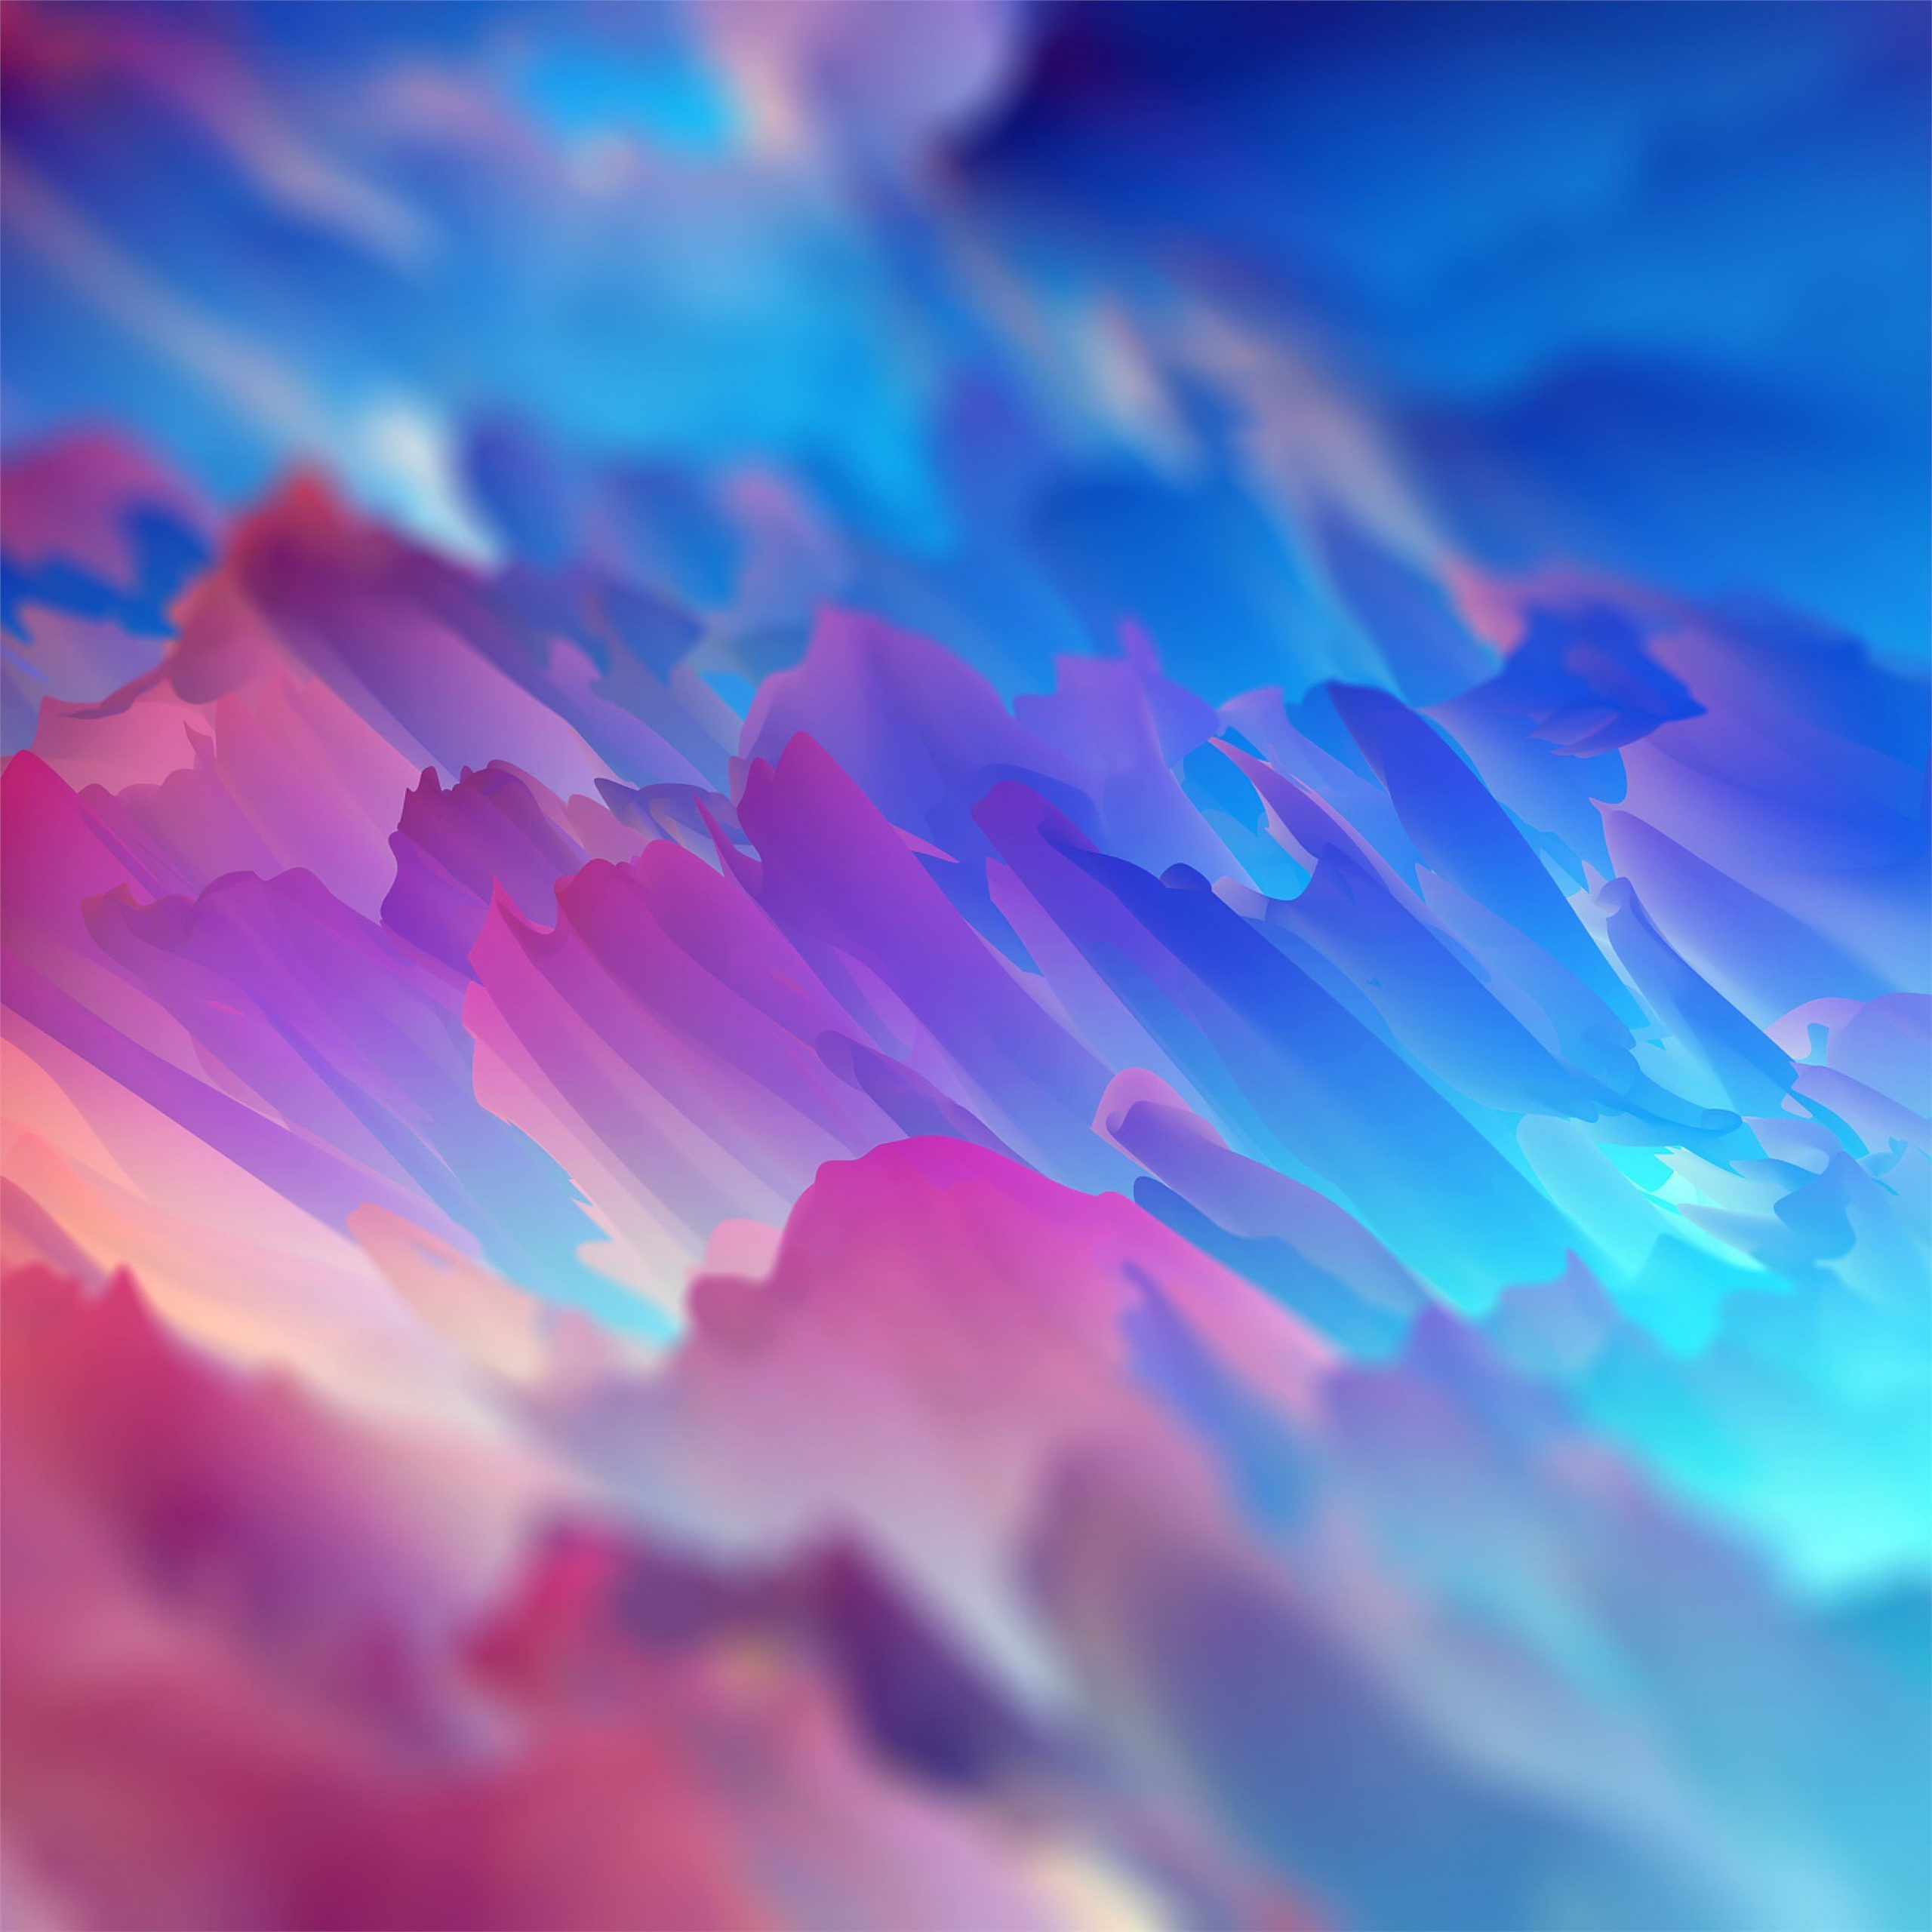 abstract colorful space colors art 4k ipad pro wallpaper ilikewallpaper